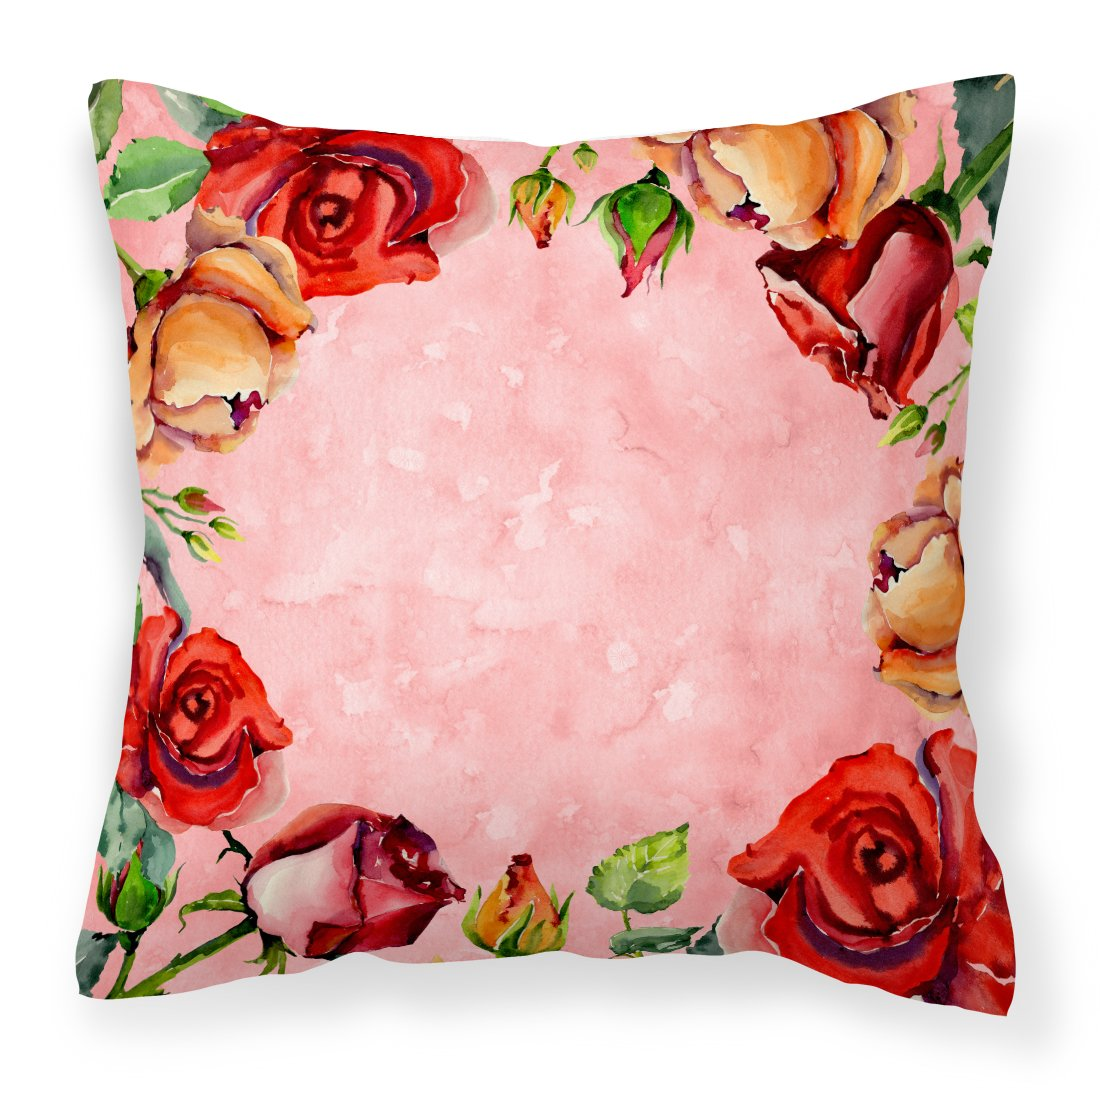 Roses Fabric Decorative Pillow CK1700PW1818 by Caroline's Treasures